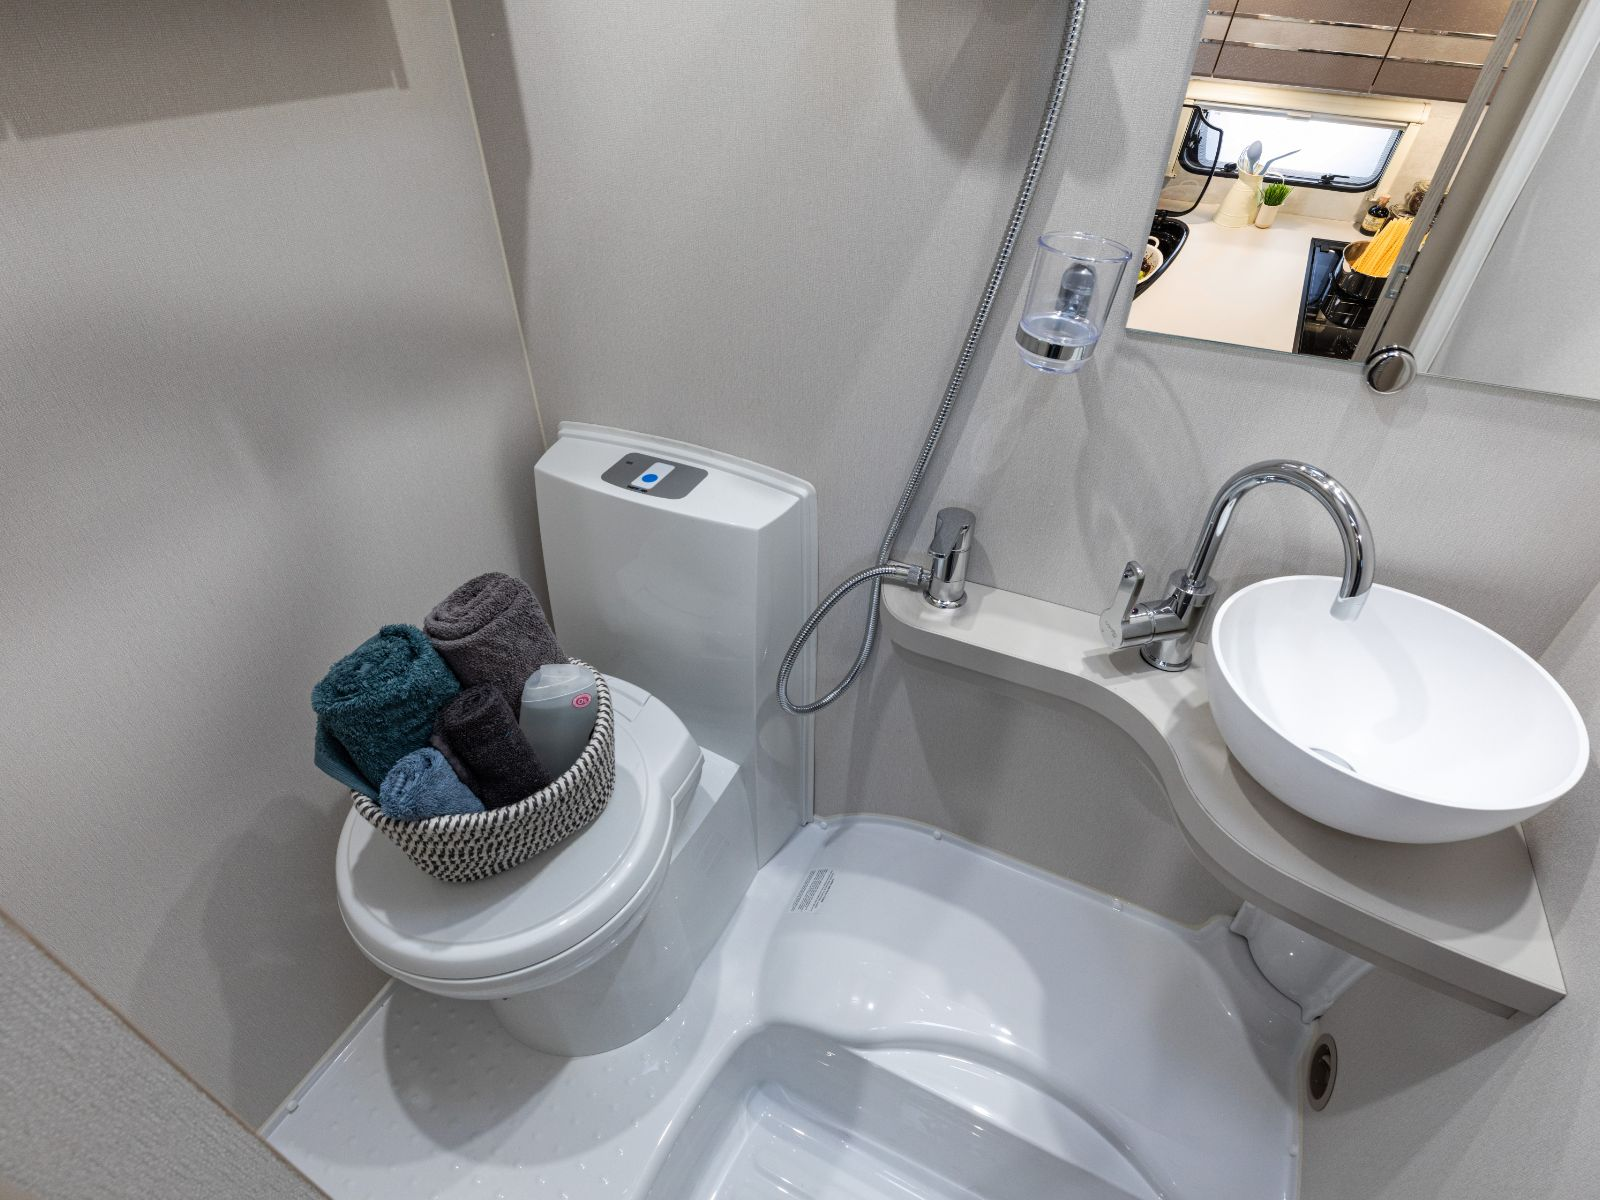 Bathroom layout with sink and toilet featuring toiletries'